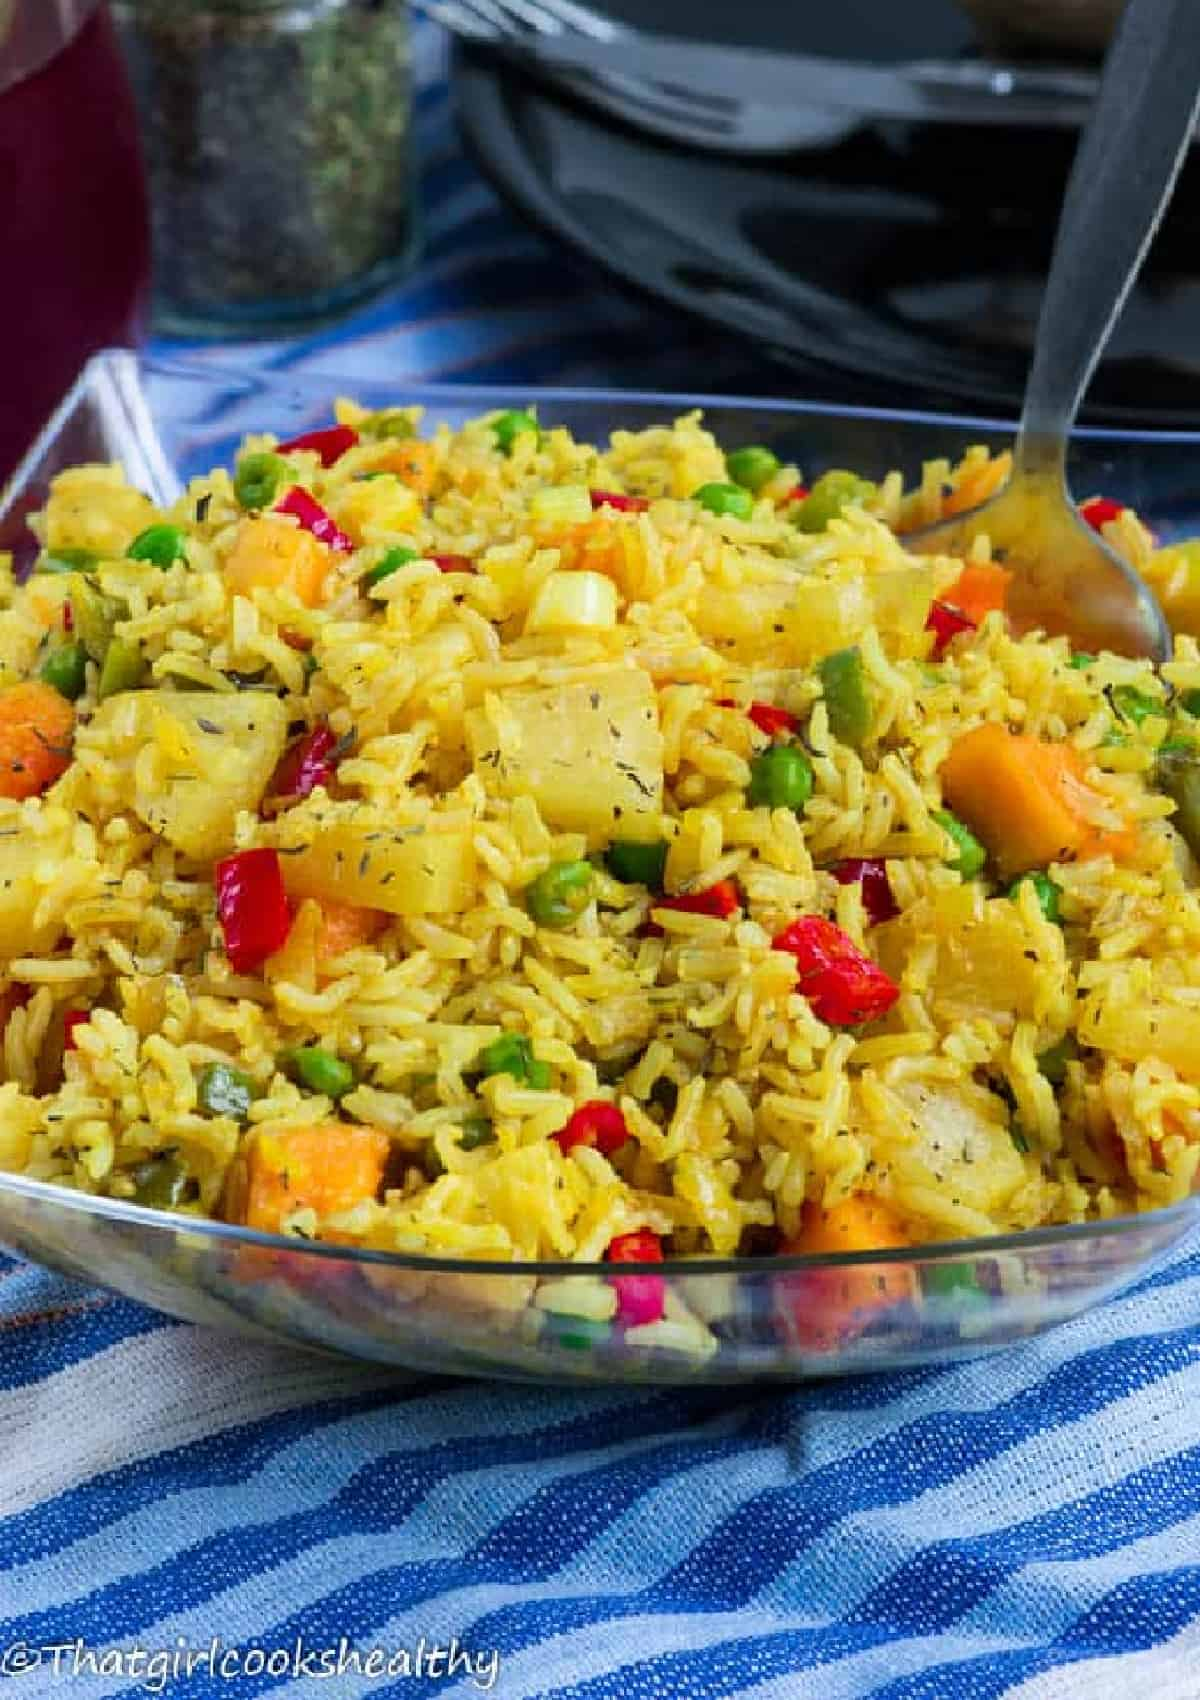 Yellow rice with spoon